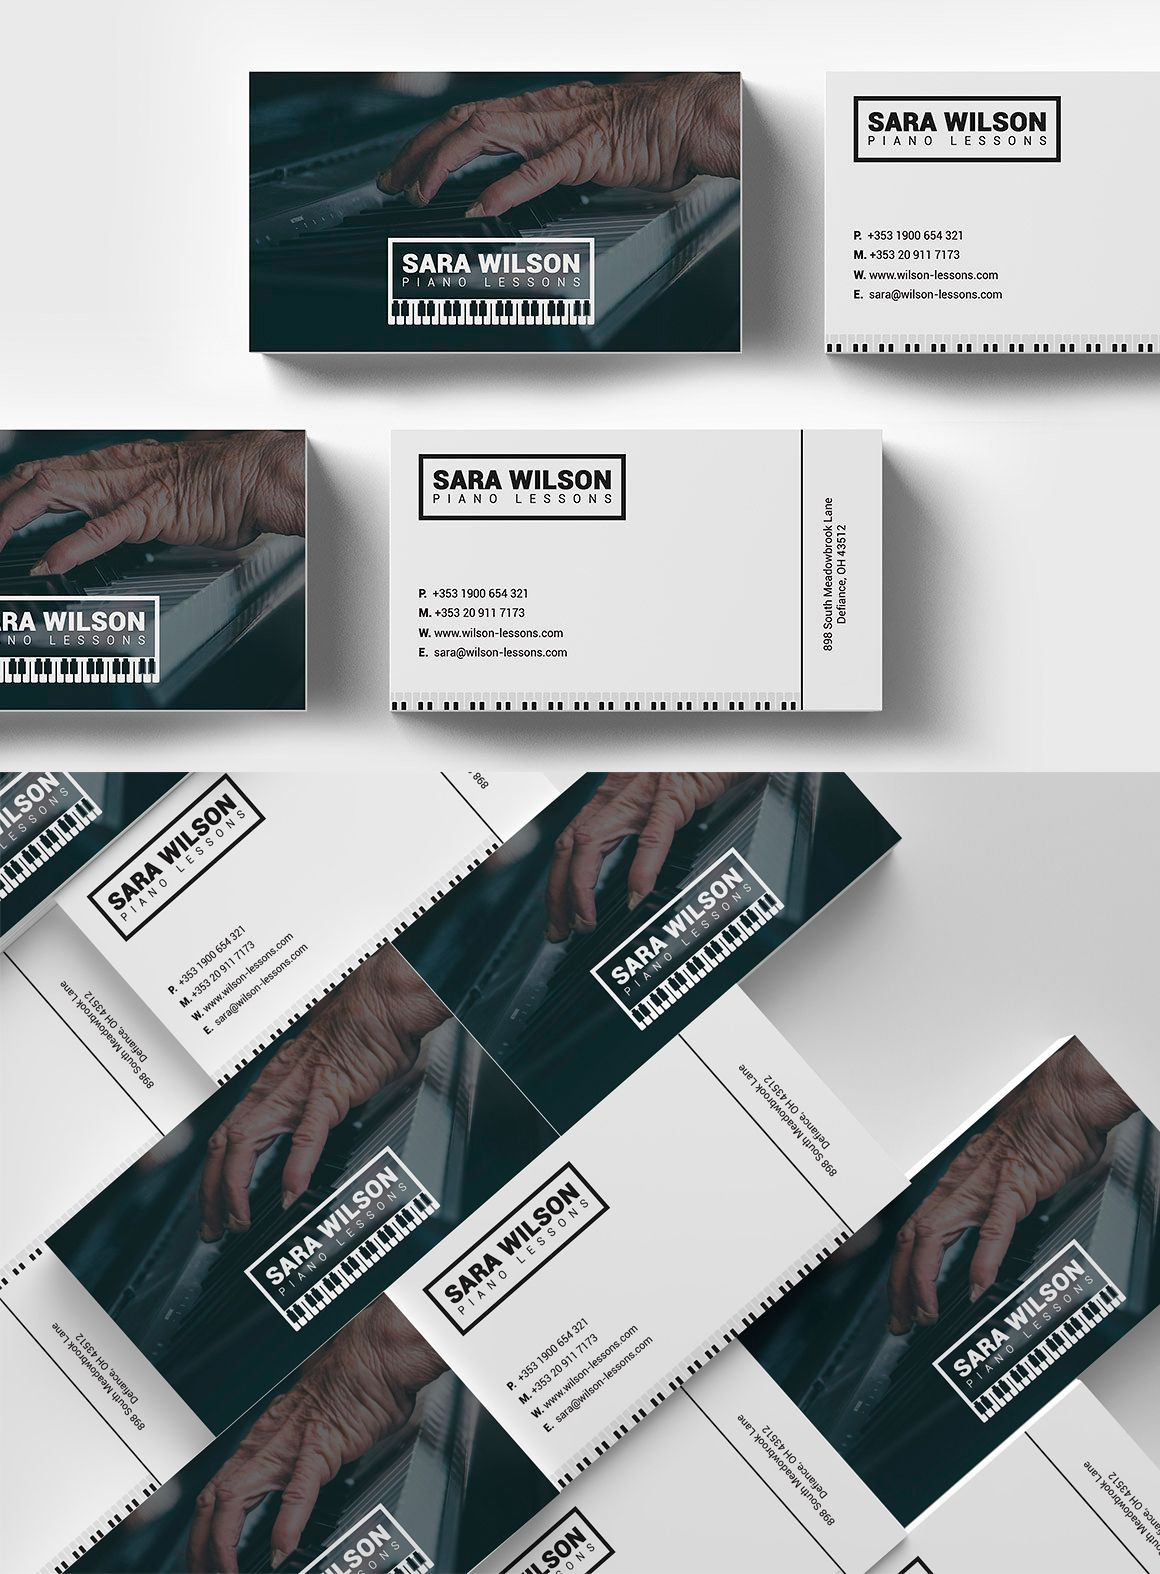 Piano Lessons Business Card Template PSD